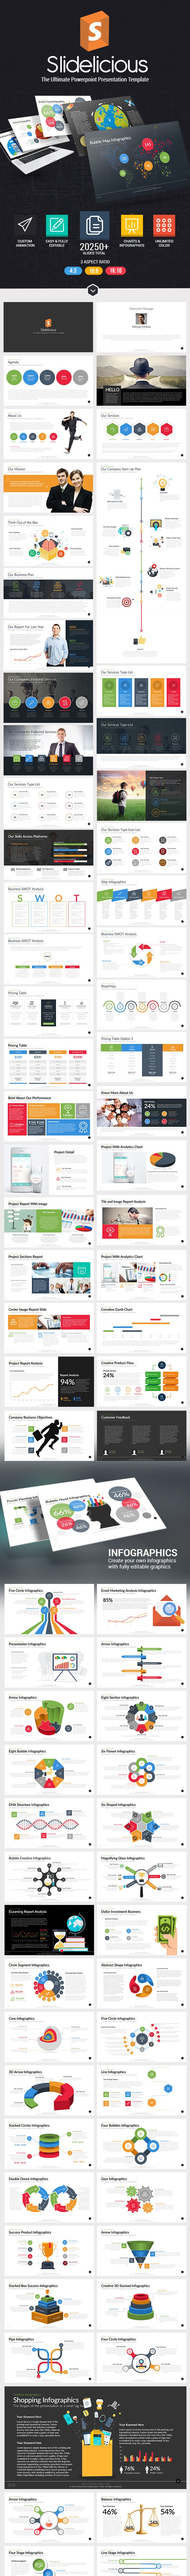 Slidelicious-The Ultimate Powerpoint Presentation - Business PowerPoint Templates